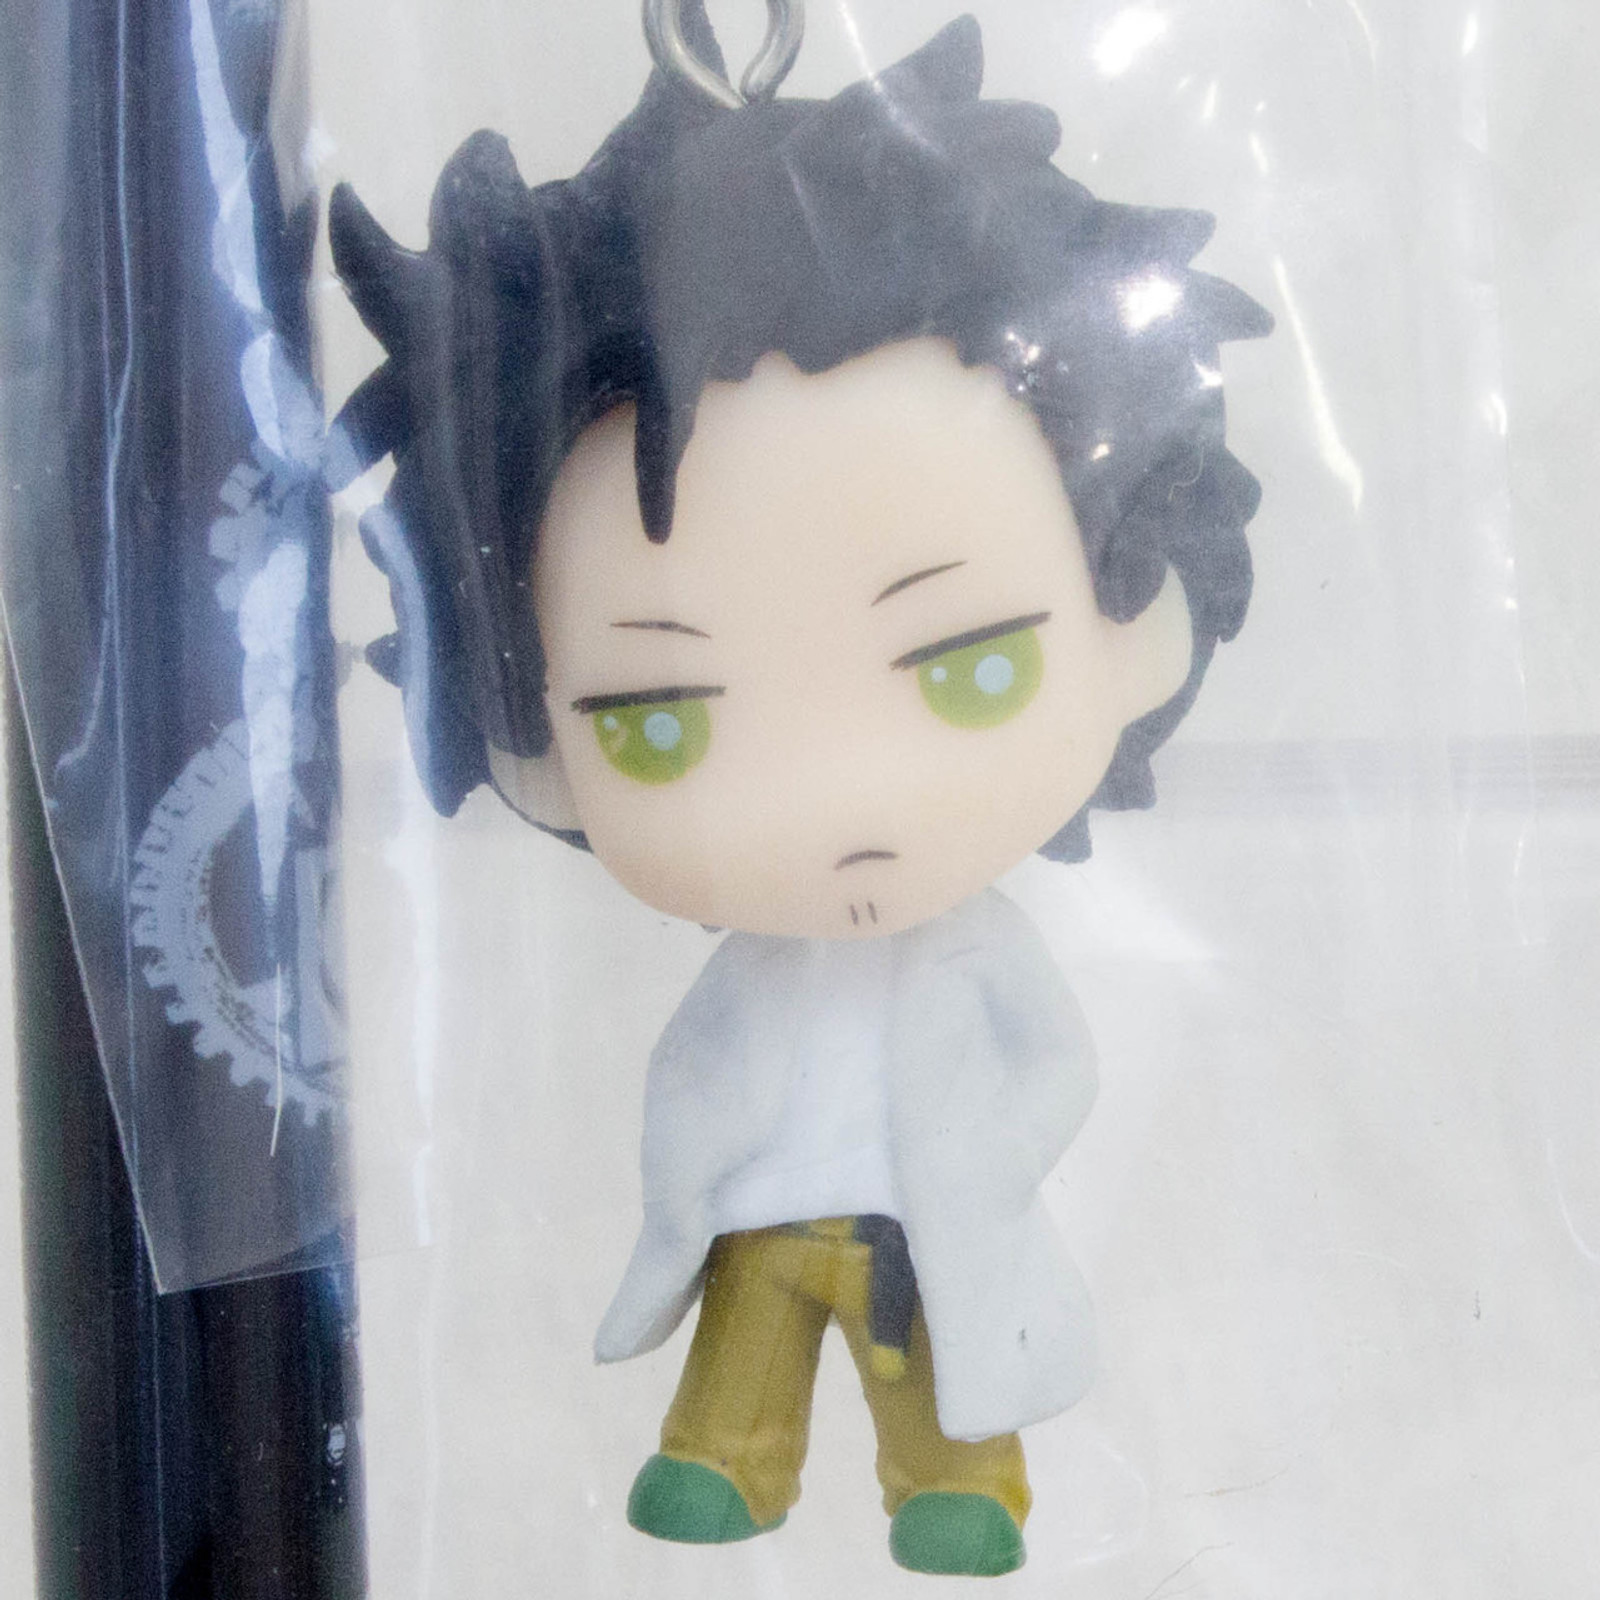 Steins ; Gate Rintaro Okabe Mini Figure Ball Point Pen JAPAN ANIME MANGA